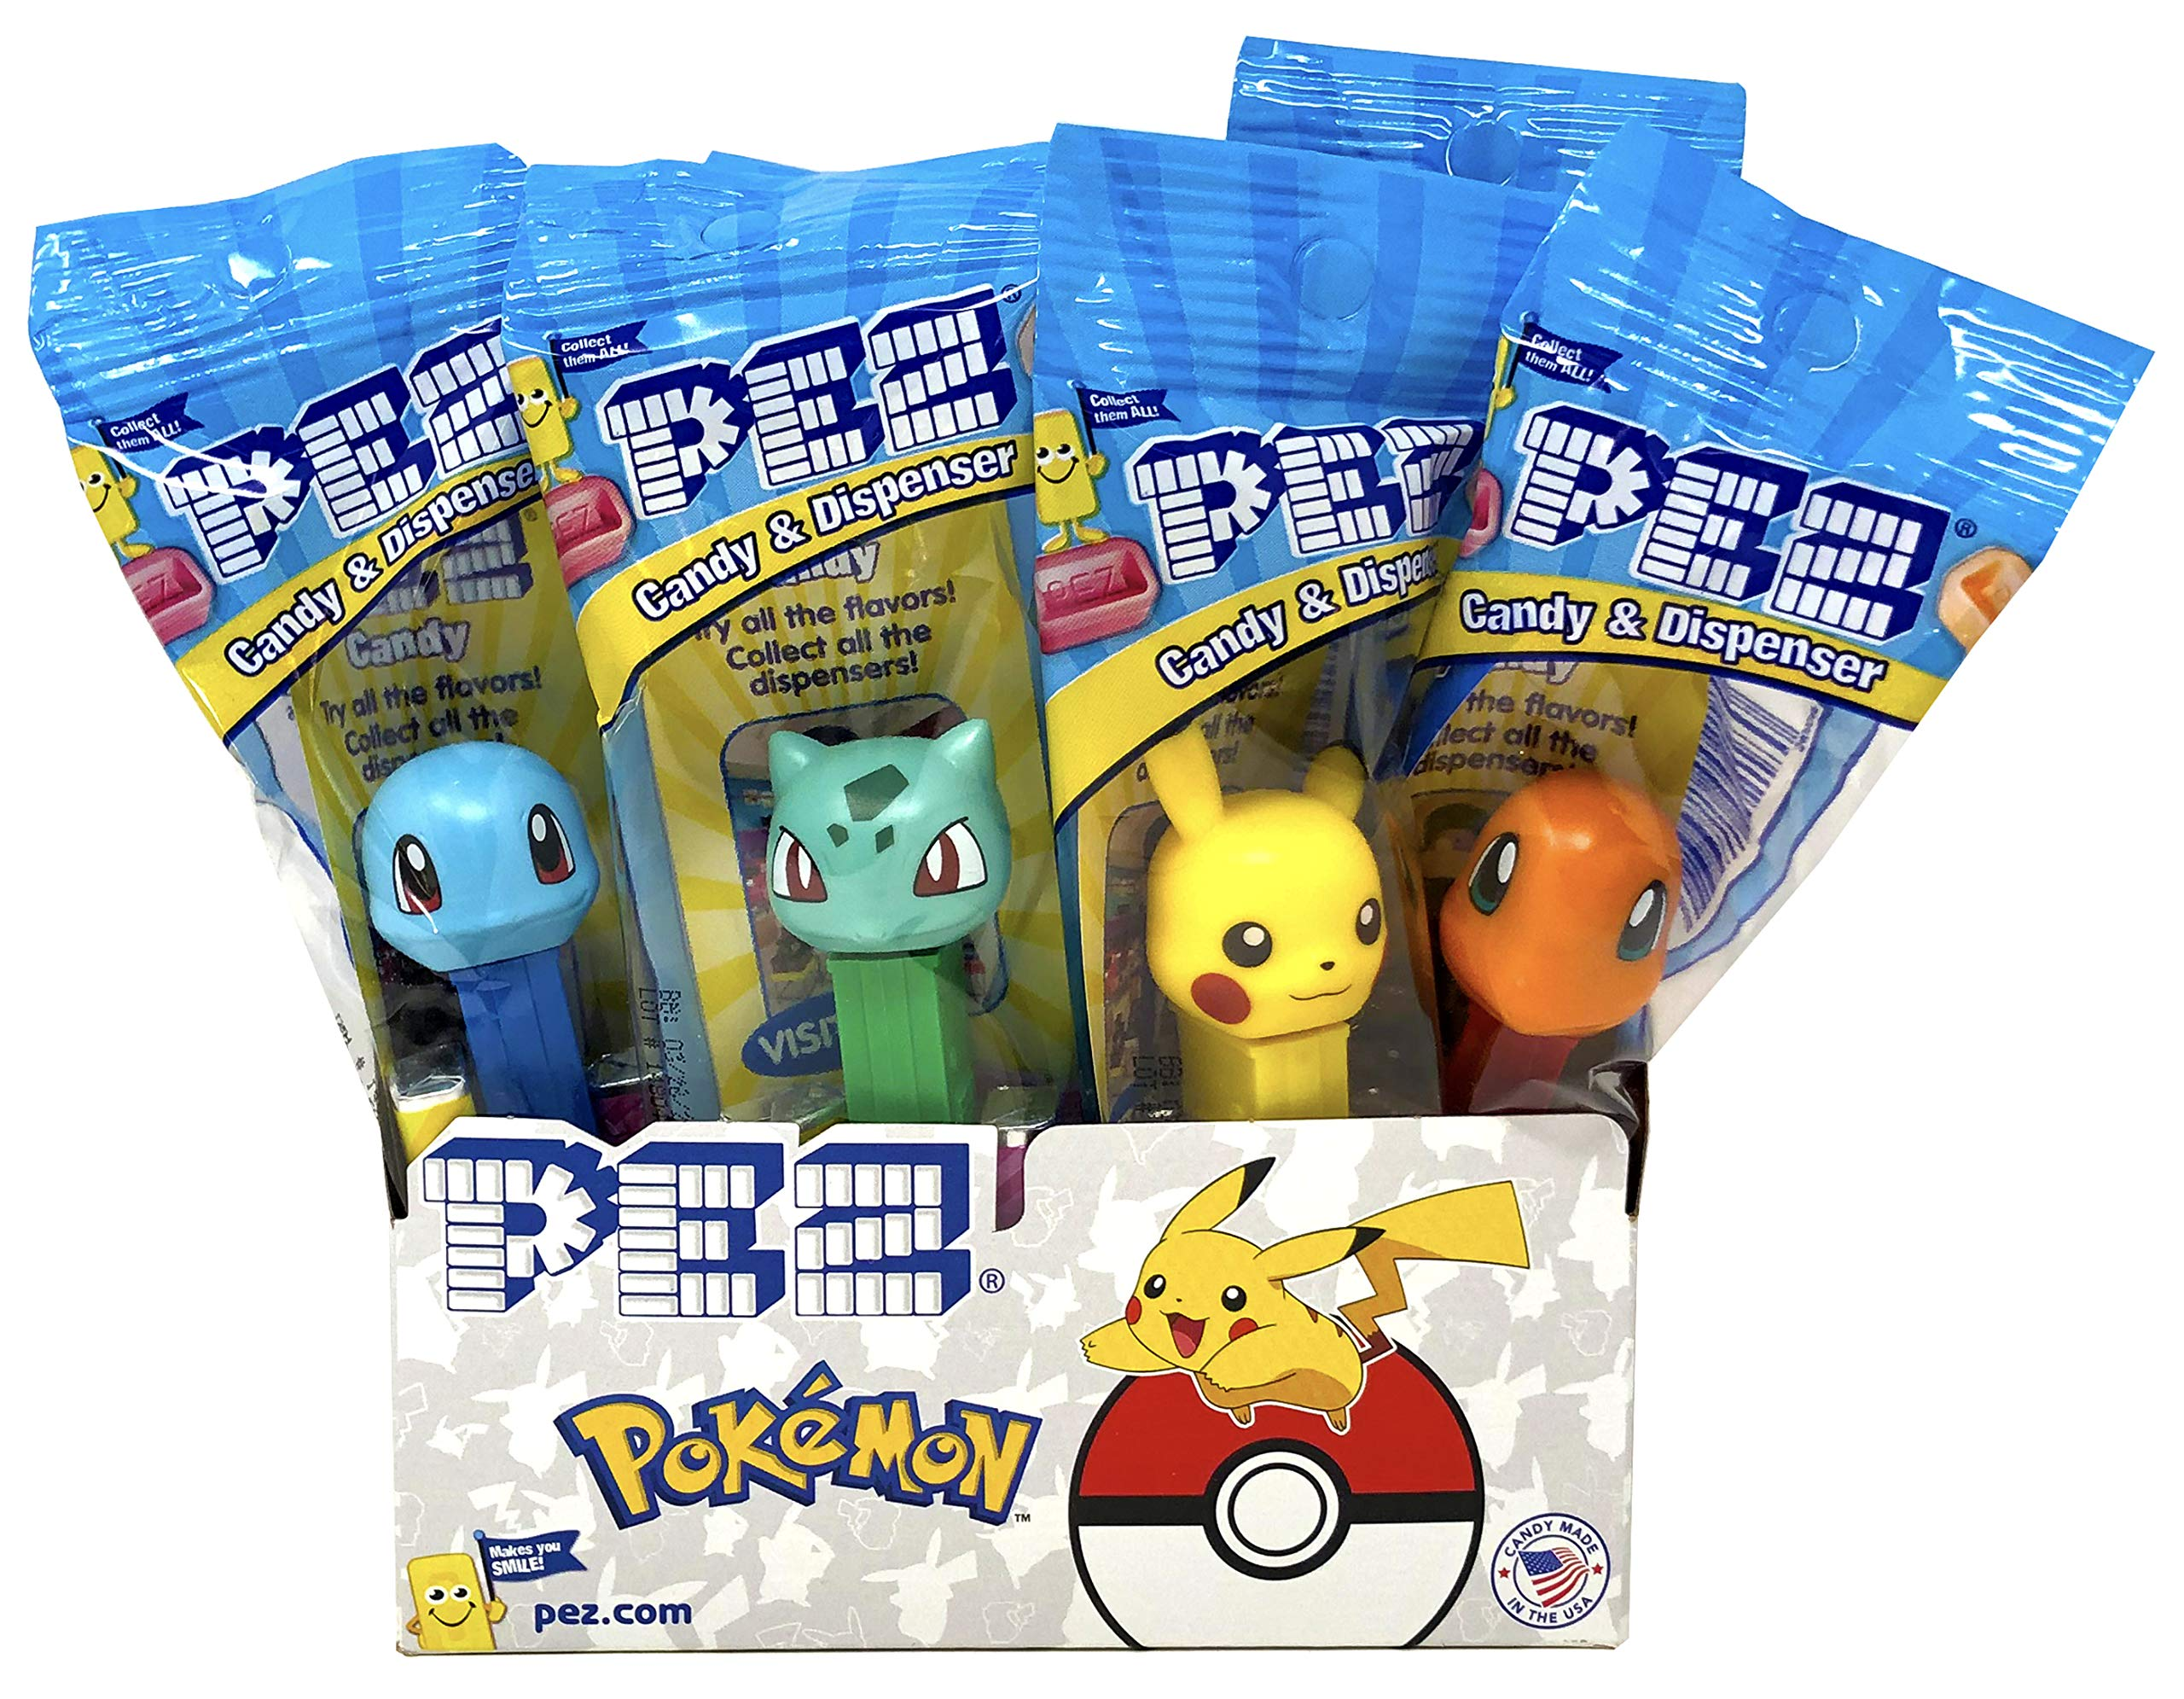 Pez Pokemon Dispensers Individually Wrapped Candy and Dispensers with Tru Inertia Kazoo (12 Pack) by Tru Inertia